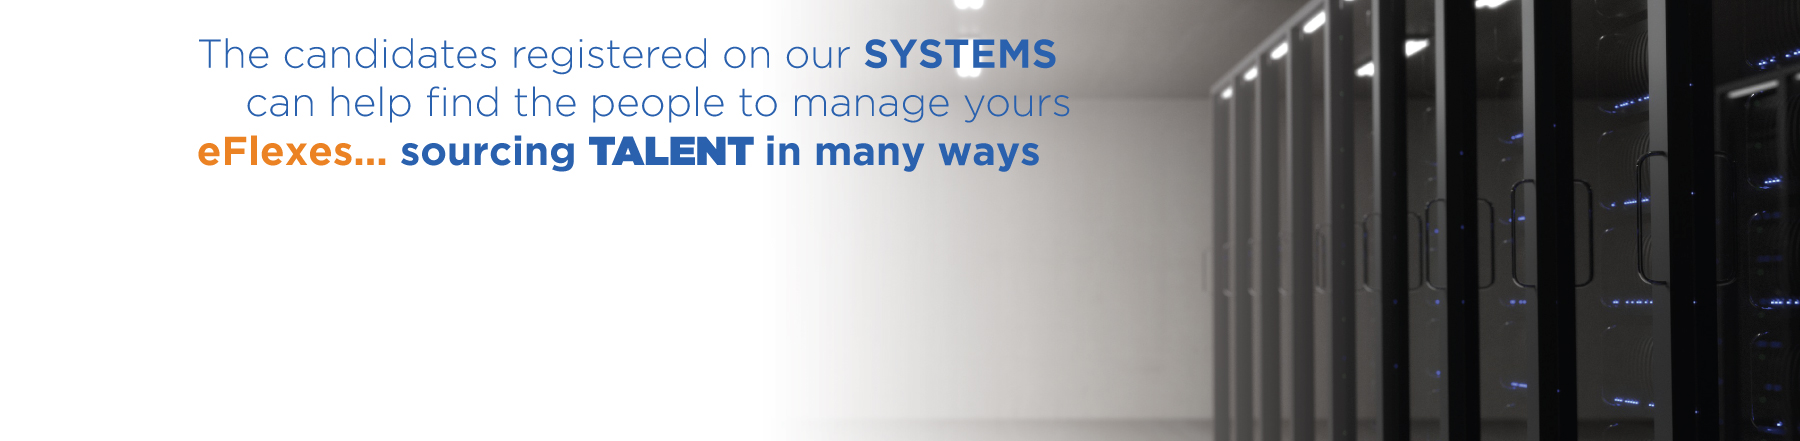 Managed Staffing Solutions | eflexes com